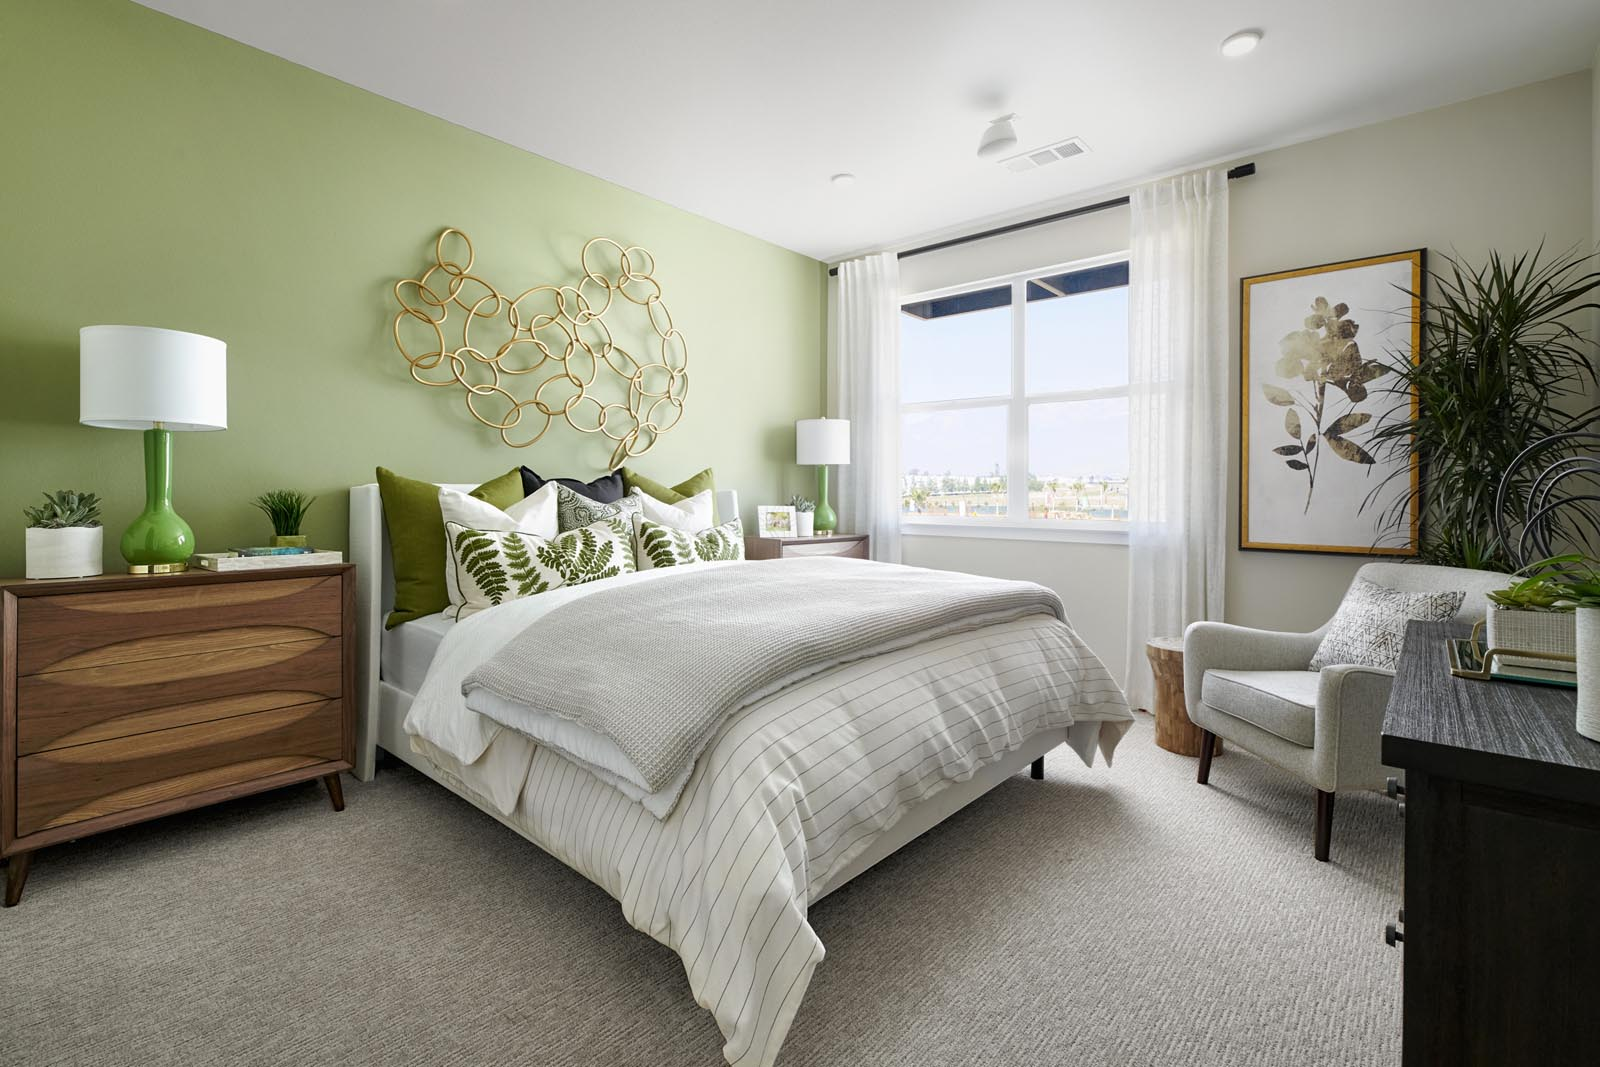 Master Bedroom | Residence 3 | Enliven | New Homes in Rancho Cucamonga, CA | Van Daele Homes